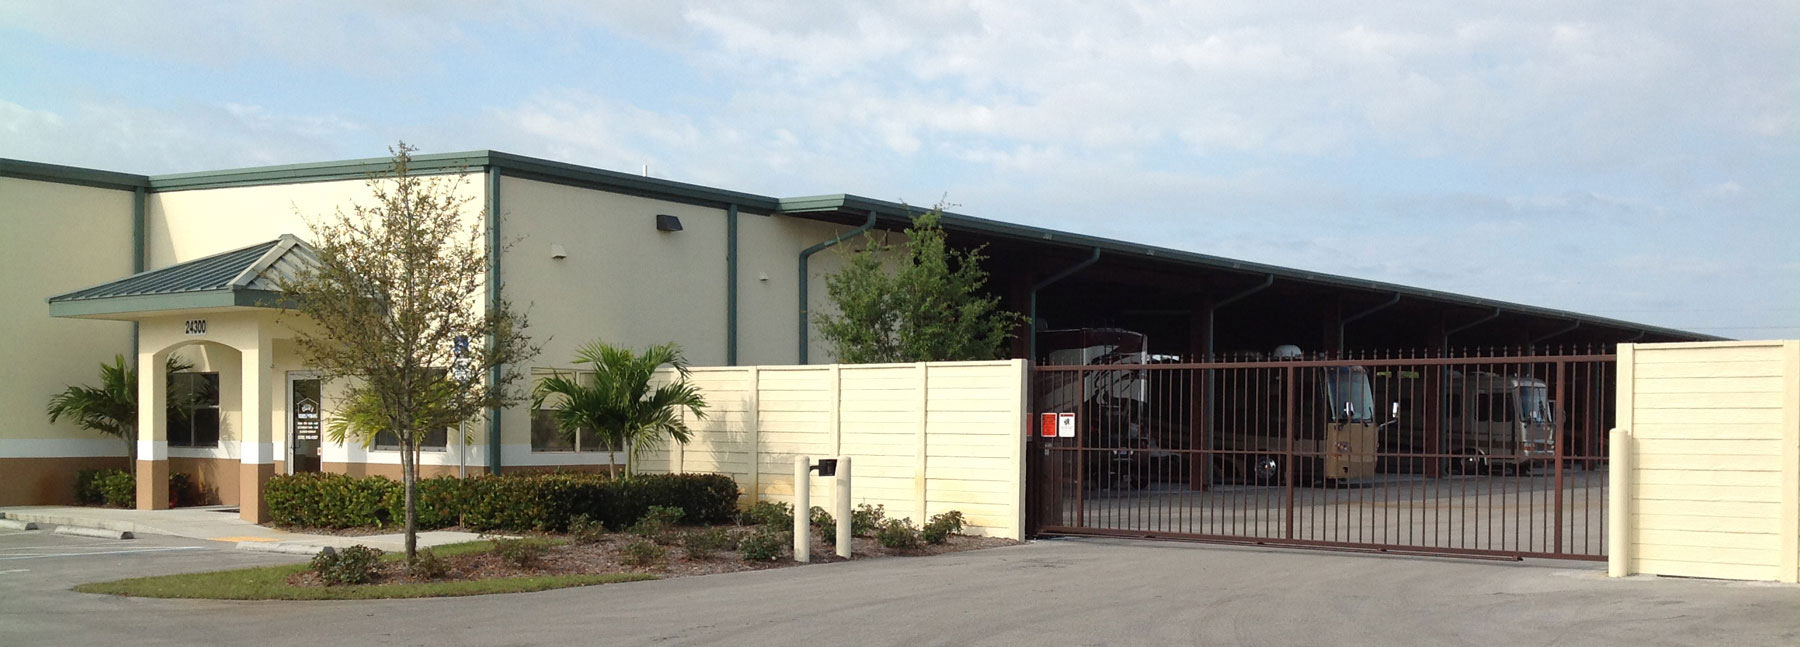 Four Convenient Locations to Serve your Vehicle storage needs